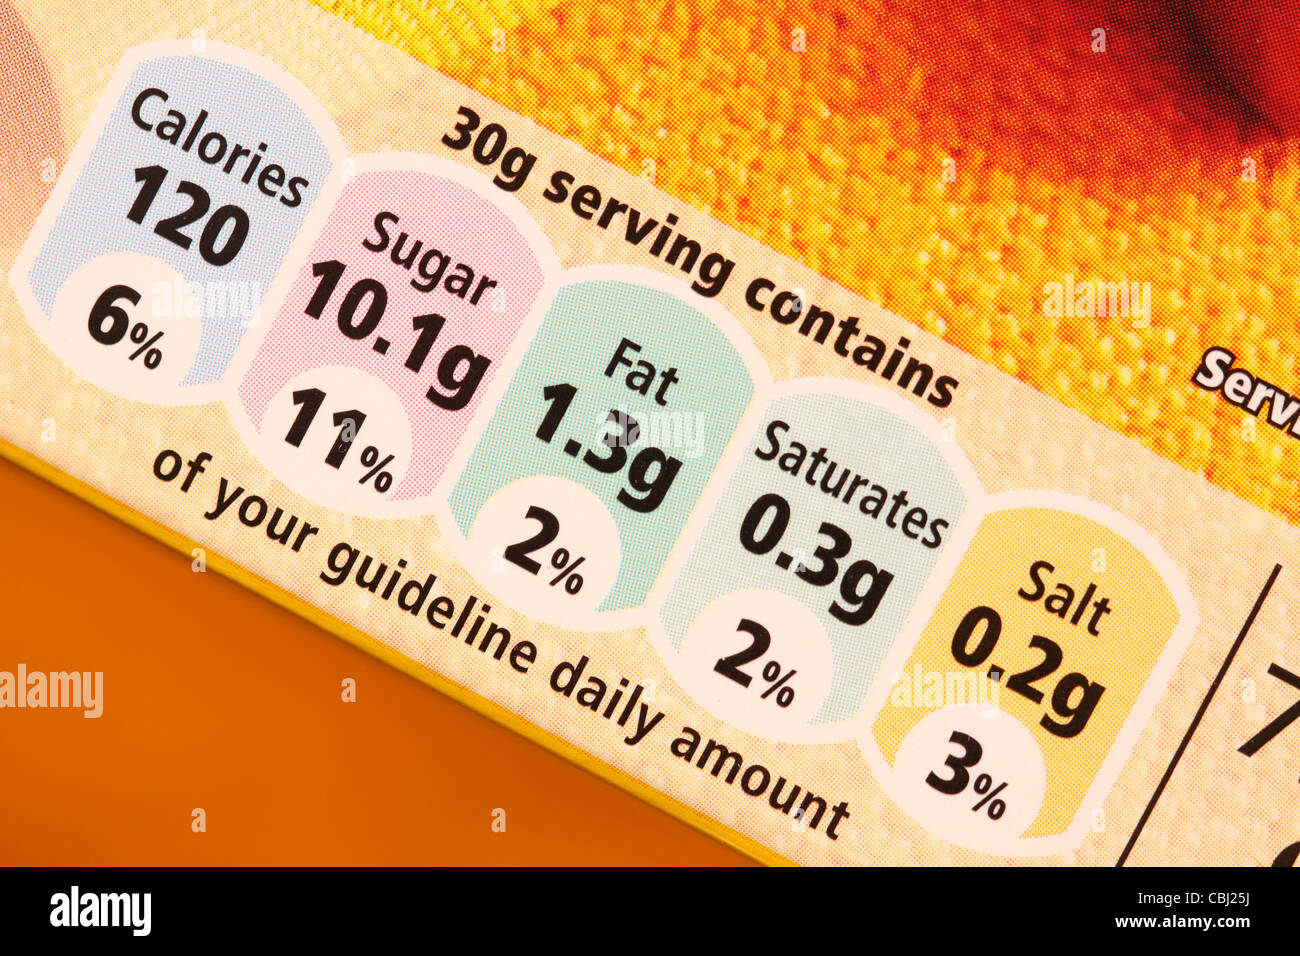 Gda Food Cereal Nutrition Contents Calories Sugar Fat Saturates Salt Stock Photo Alamy